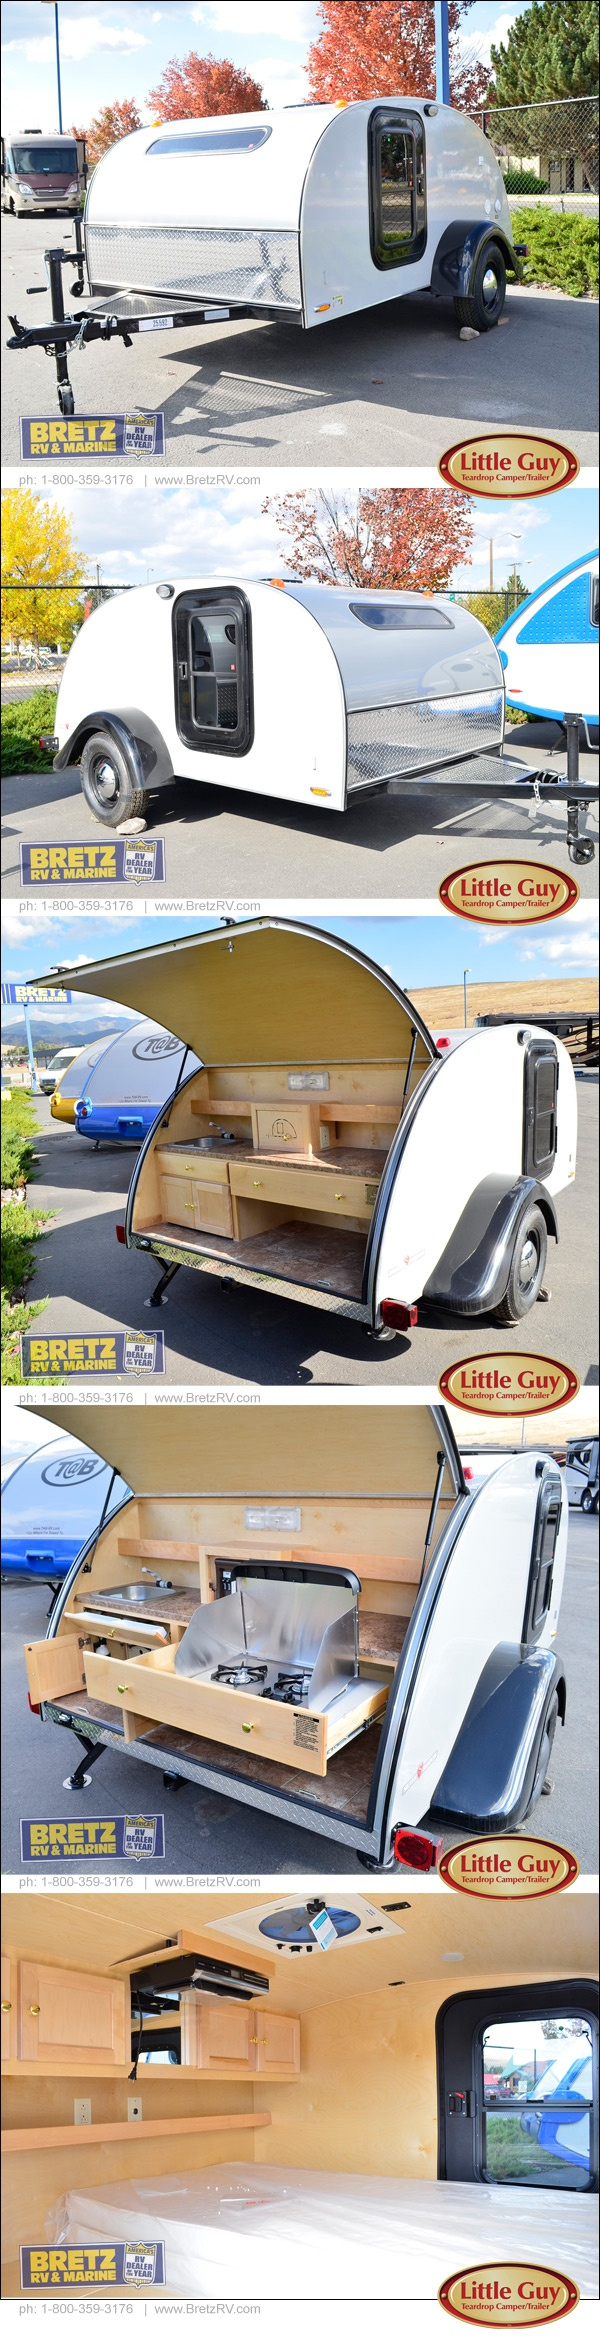 Where could you go in this super lightweight camping trailer?